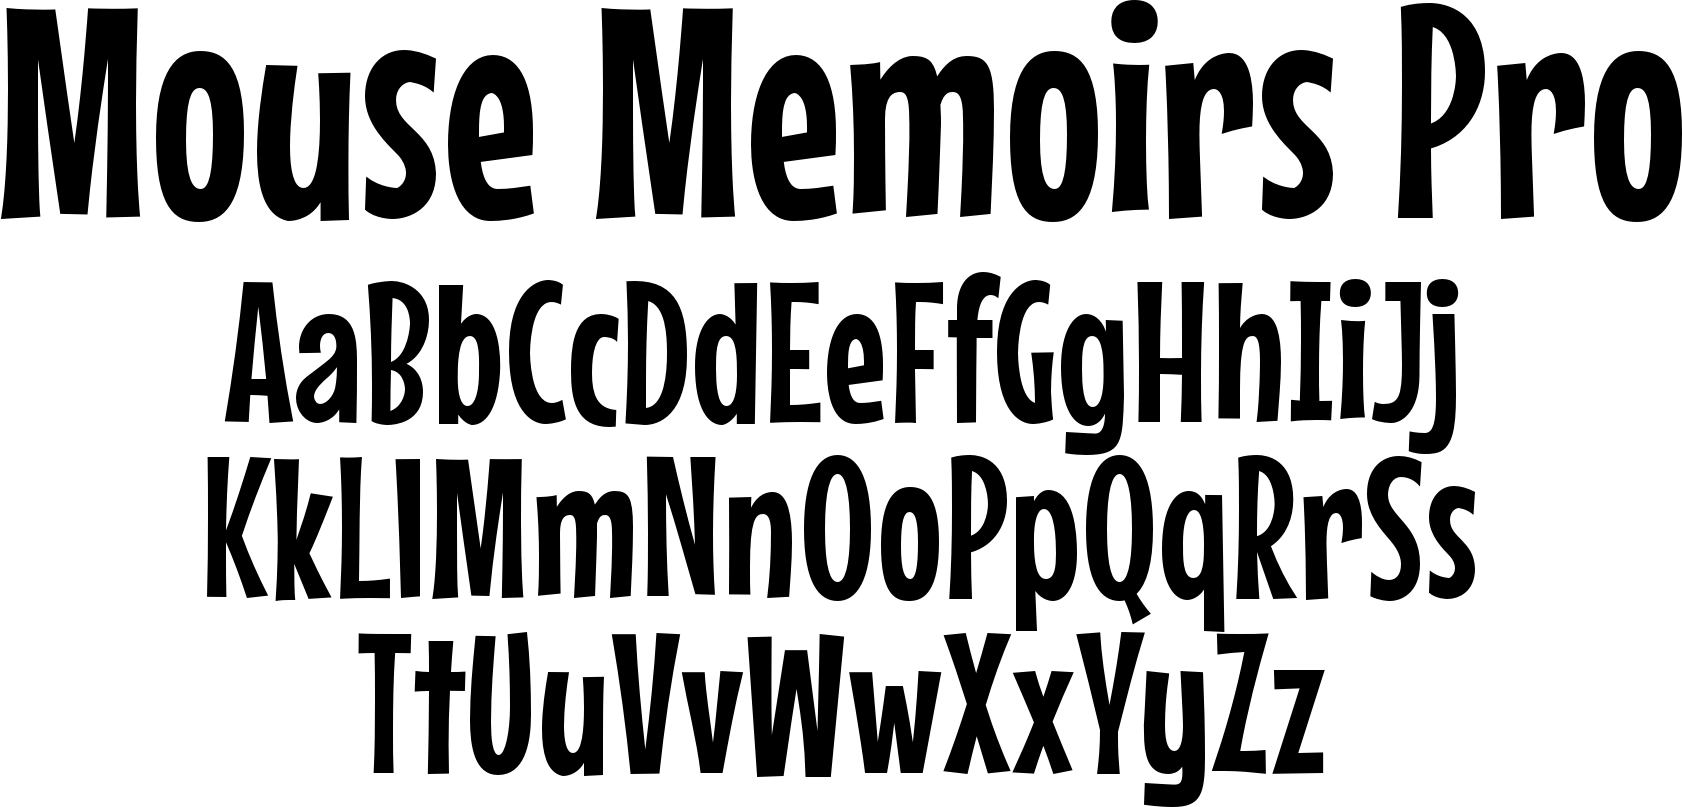 Mouse Memoirs Pro Font by Stiggy & Sands : Font Bros | Memoirs, Disney  aesthetic, Vintage mickey mouse